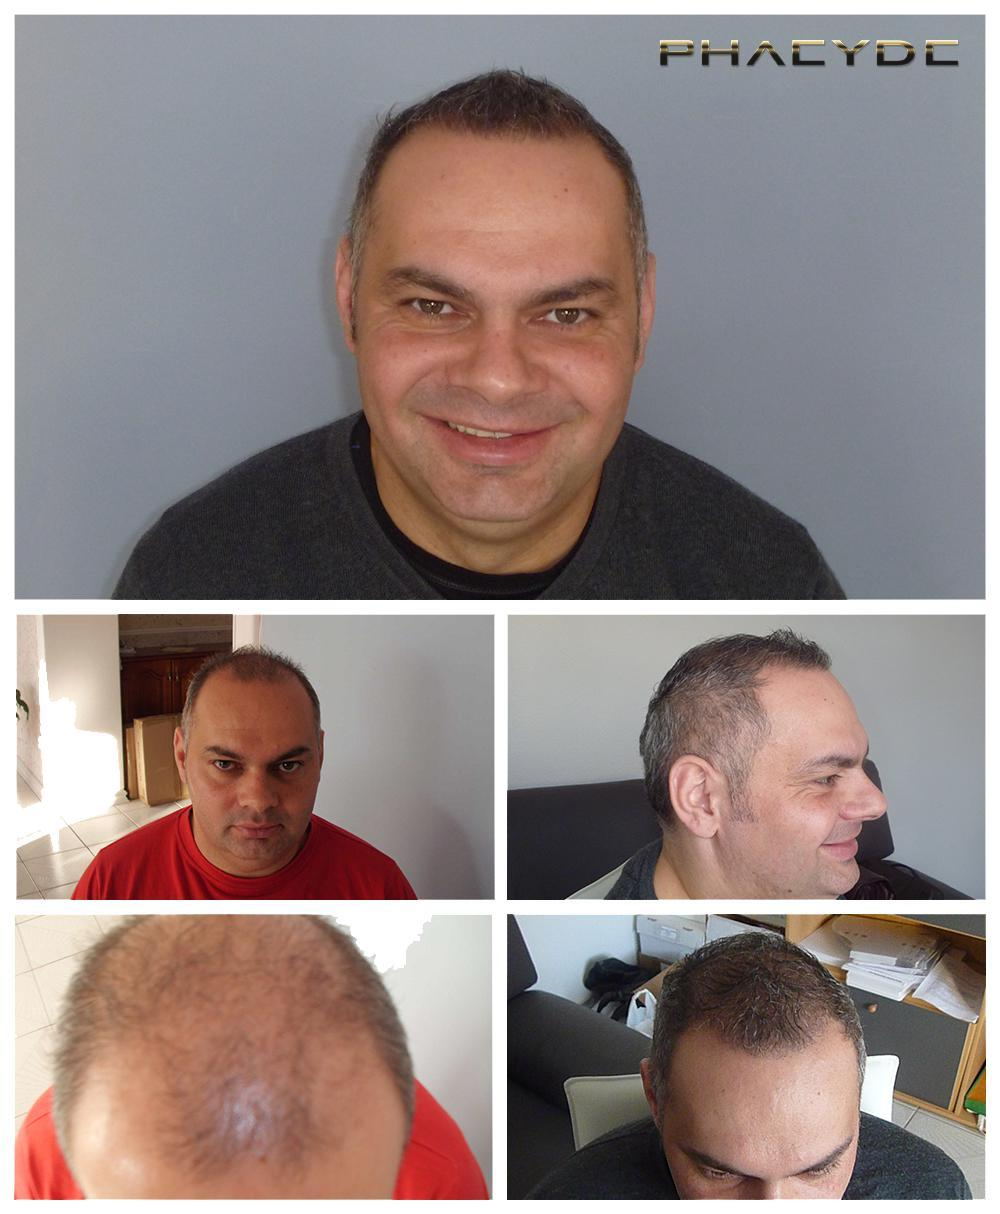 Hair transplant fue results before after photos zoltan lencse - PHAEYDE Clinic